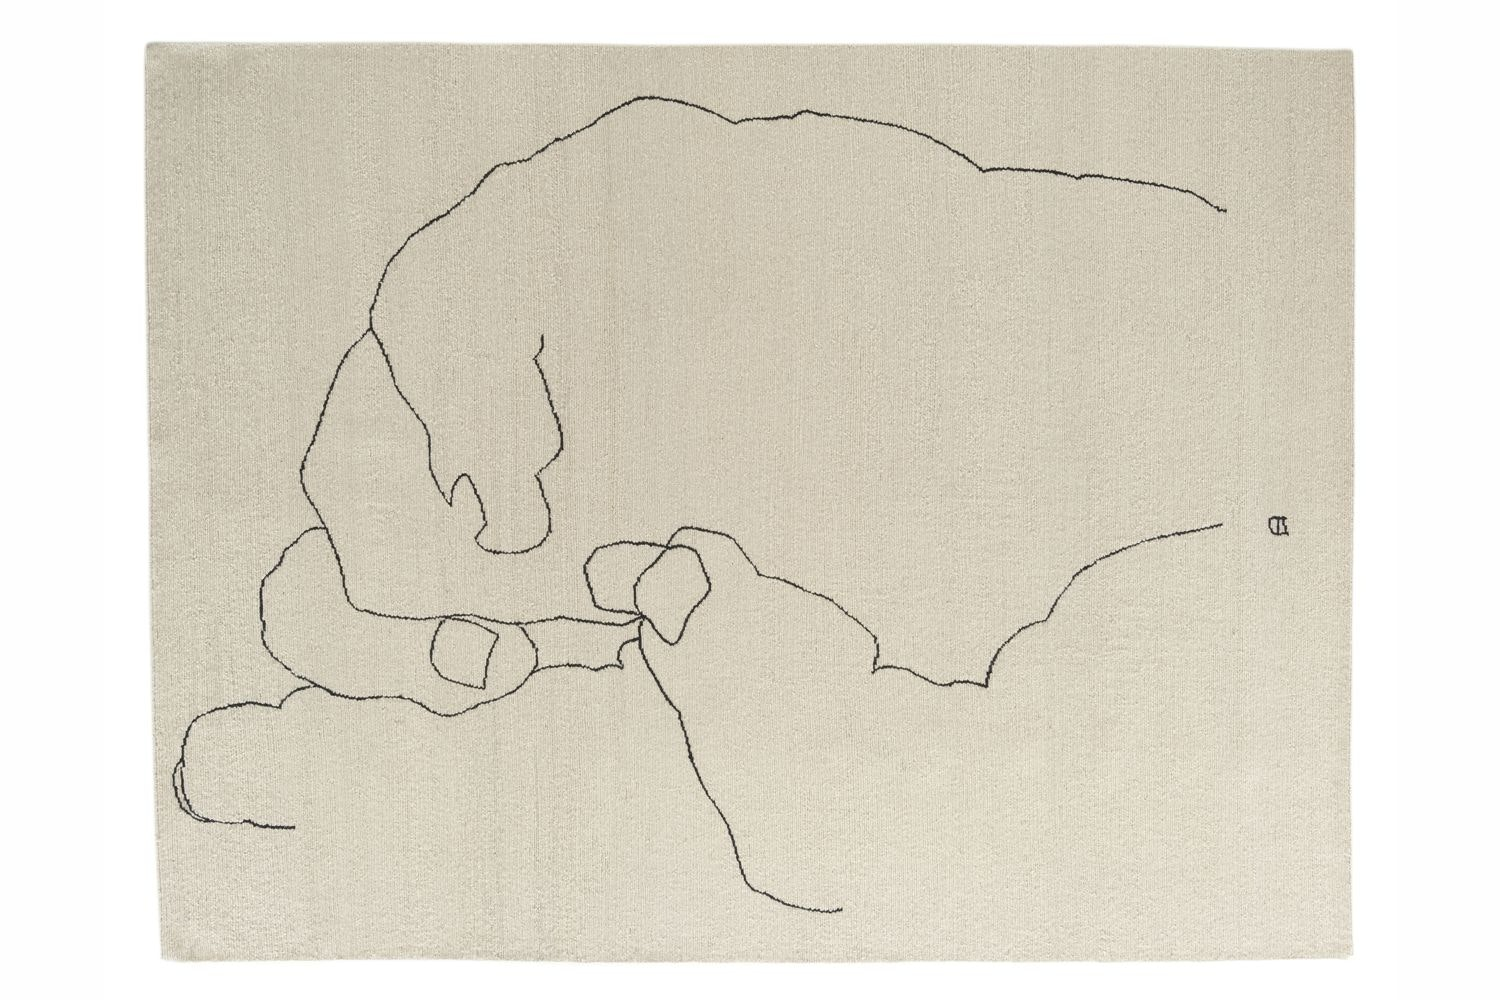 Mano 1993 by Eduardo Chillida for Nani Marquina